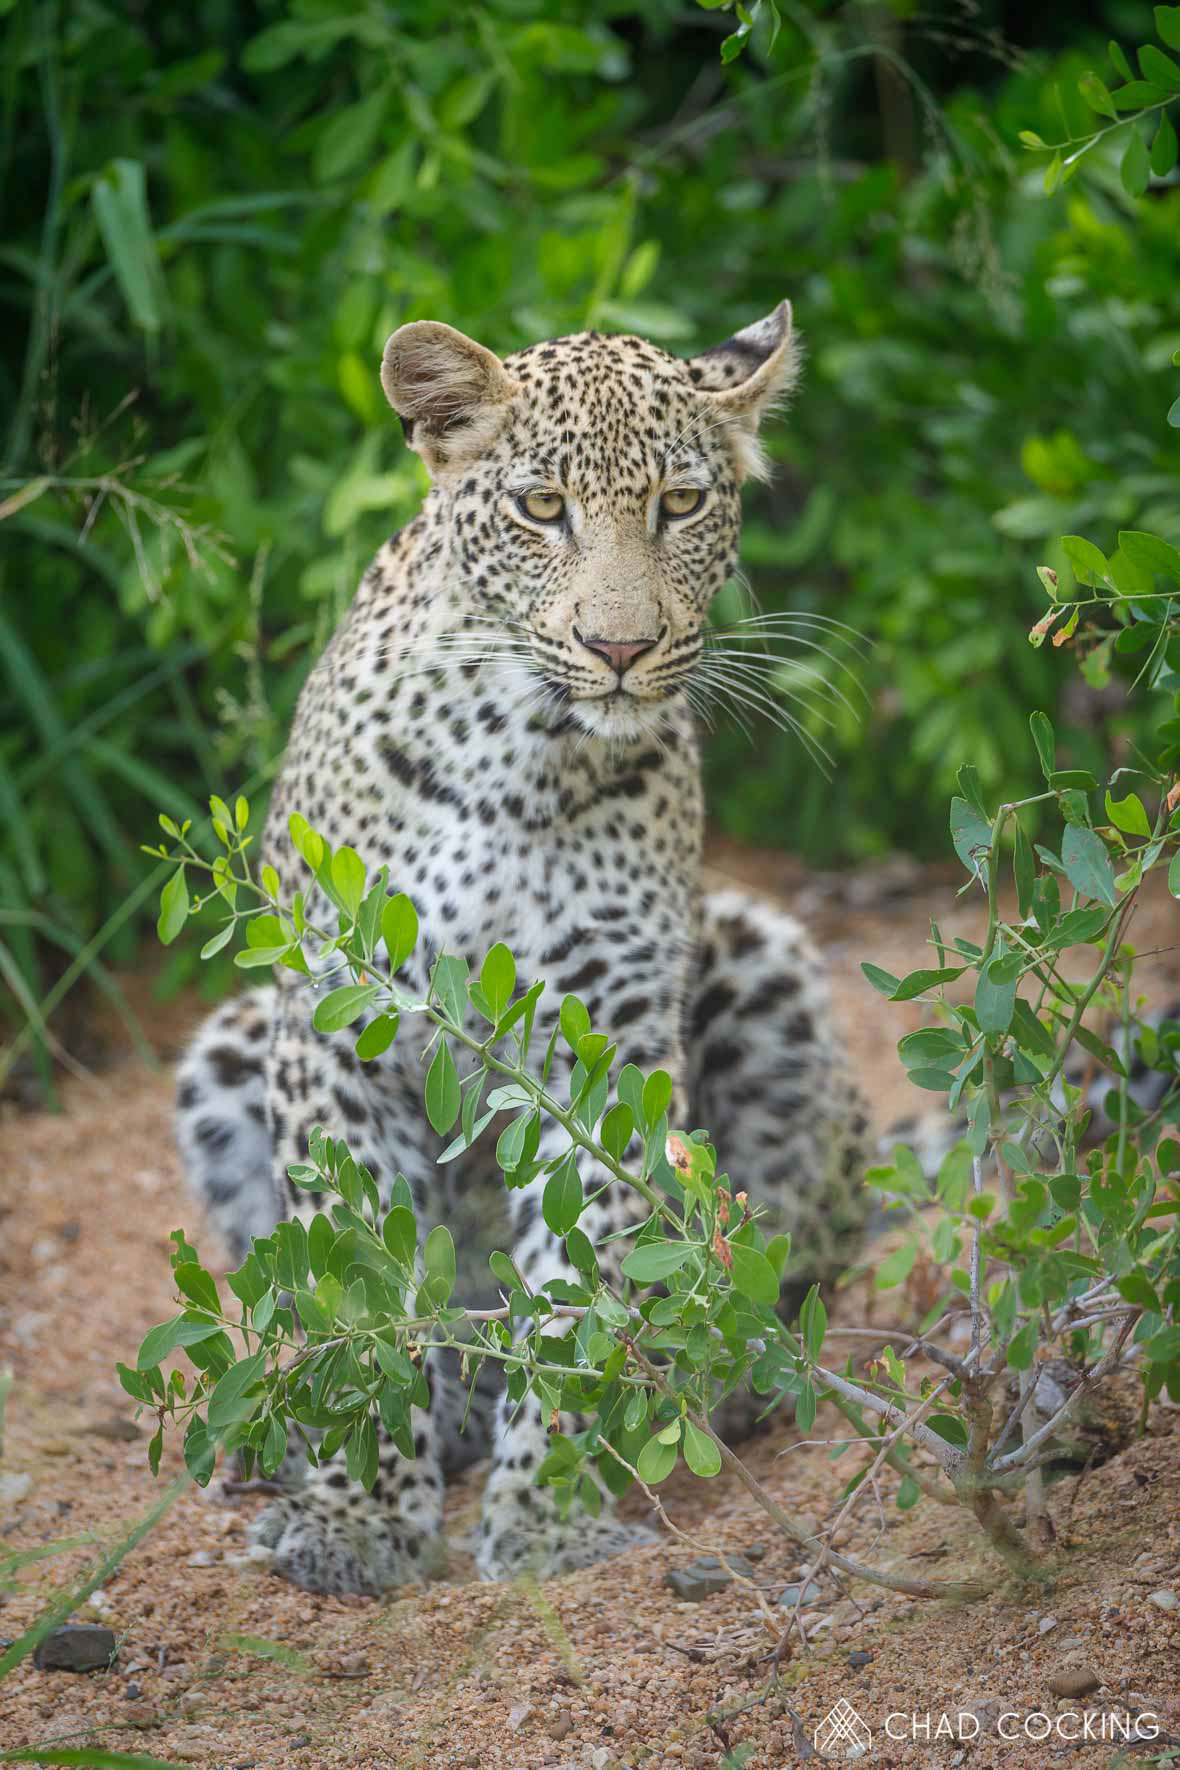 Tanda Tula - Xisiwana male leopard in the Greater Kruger